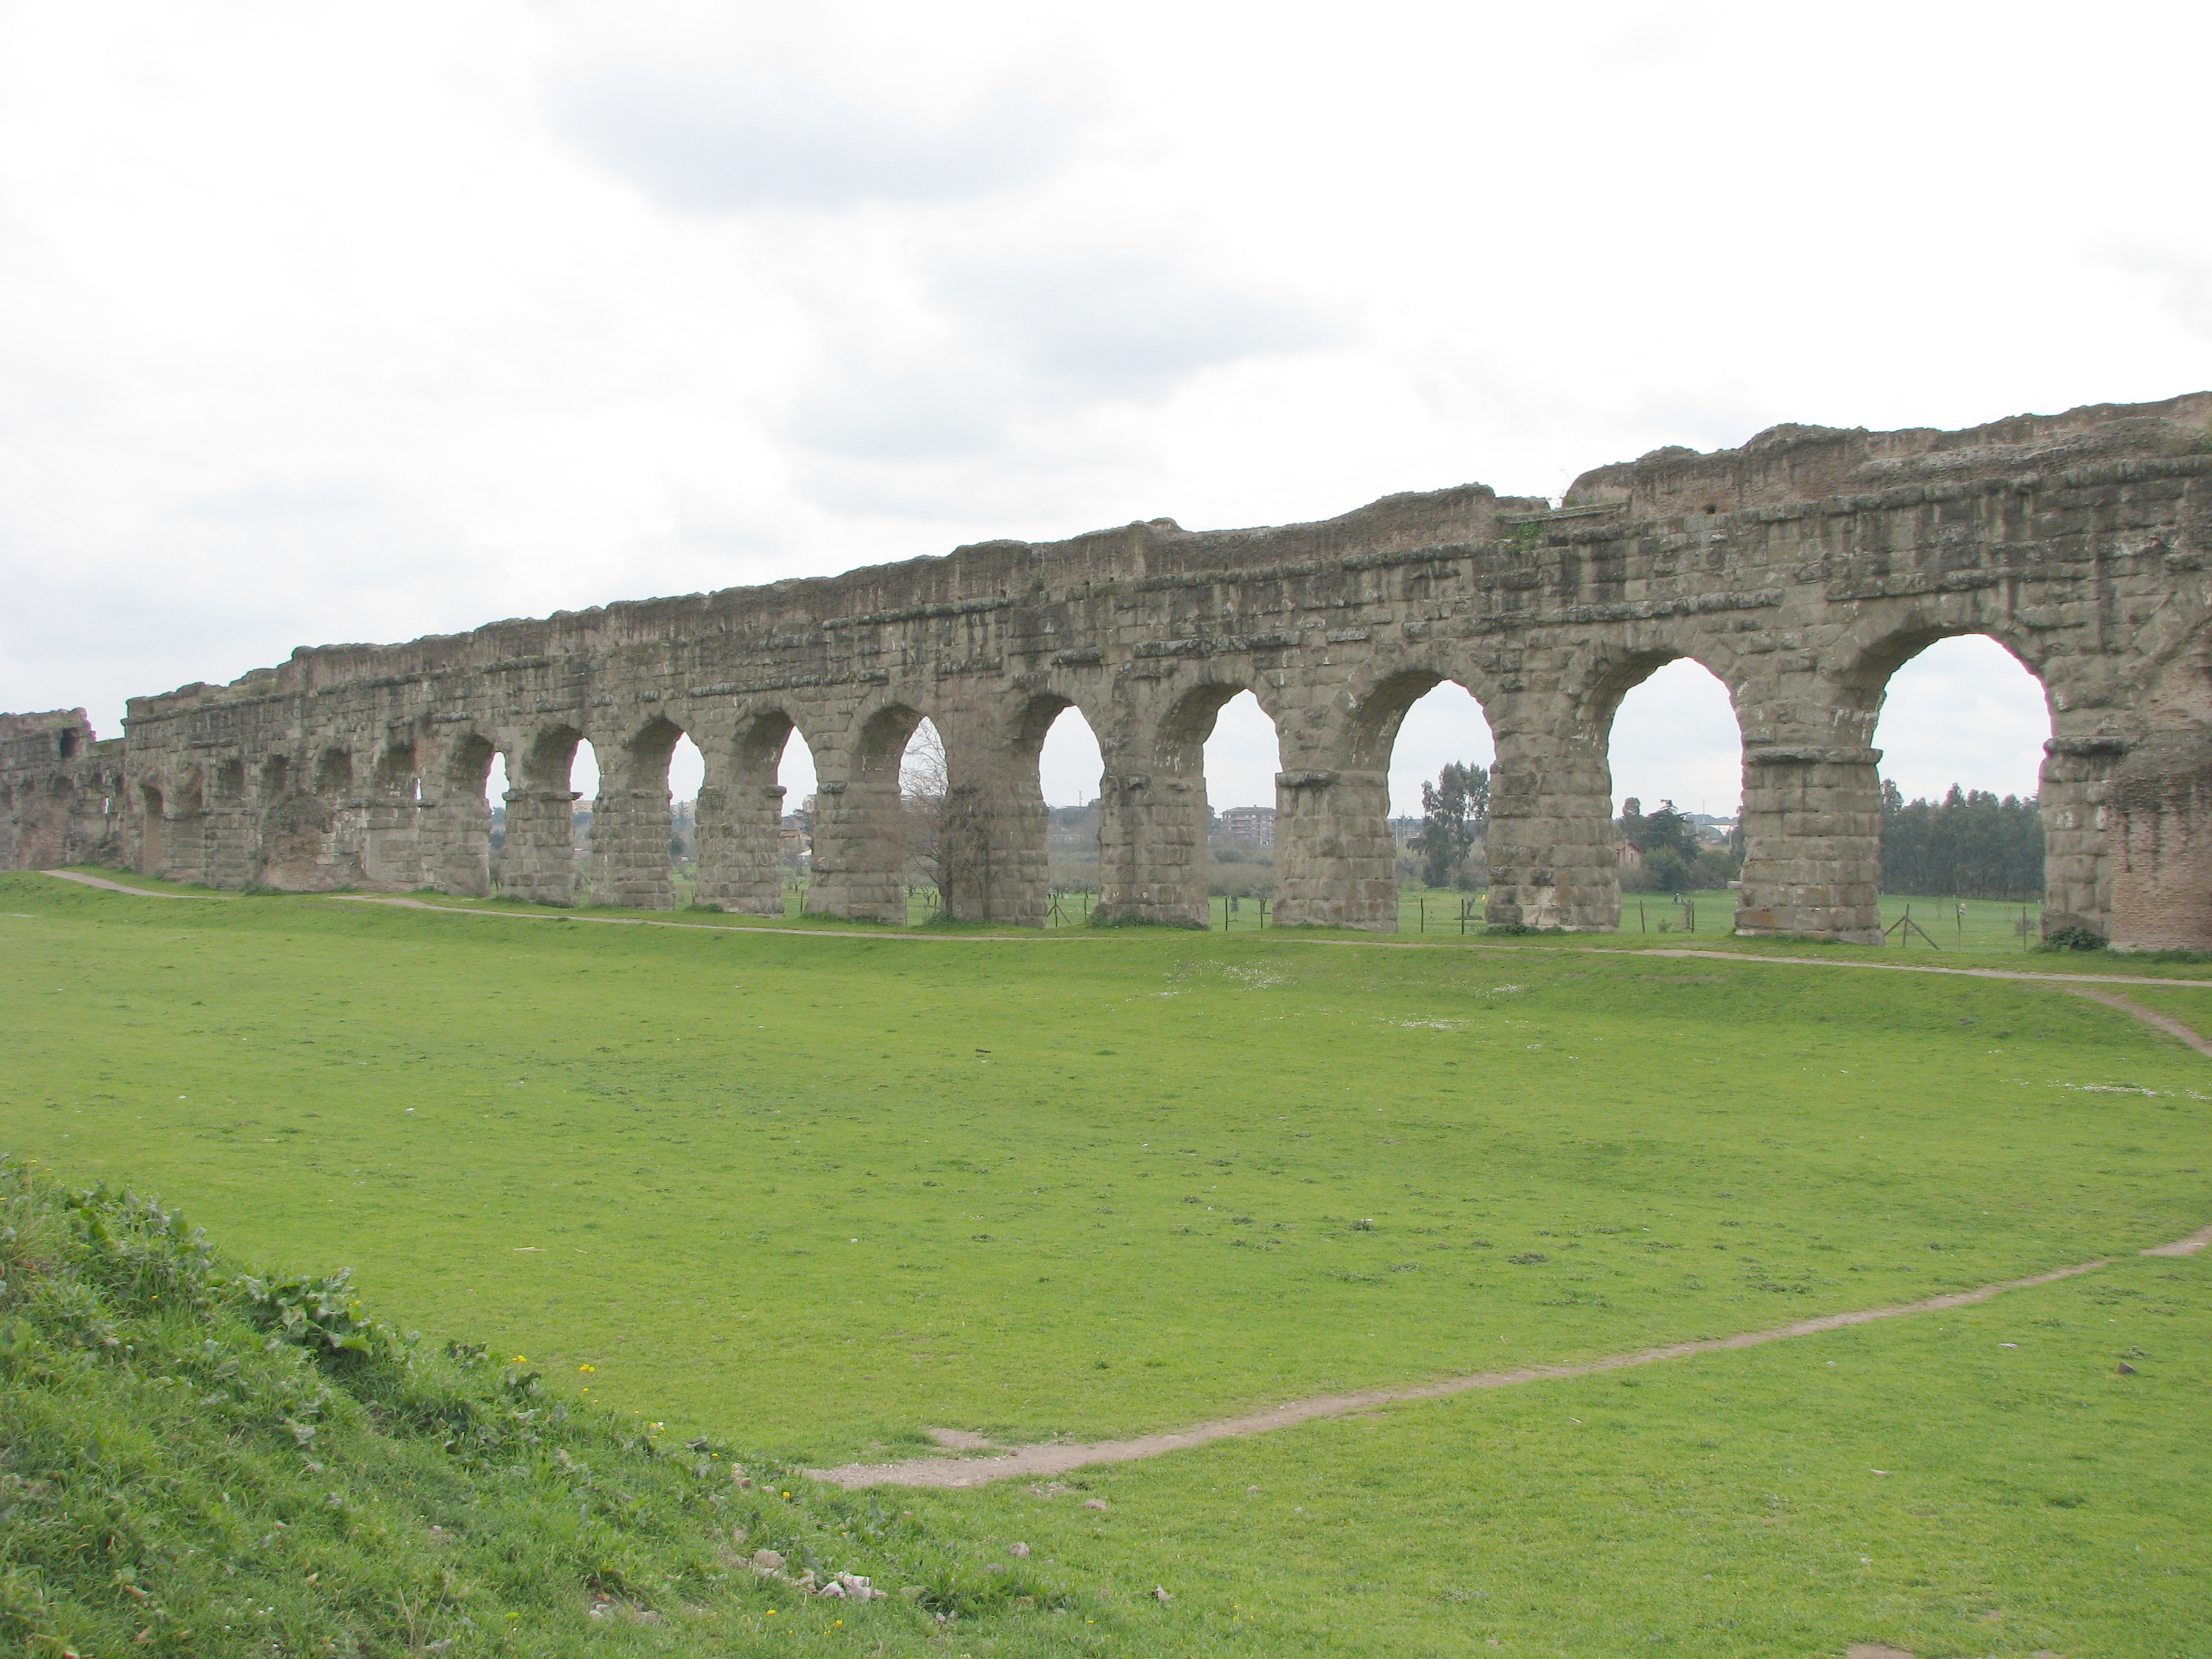 Works Cited - Roman Aqueducts